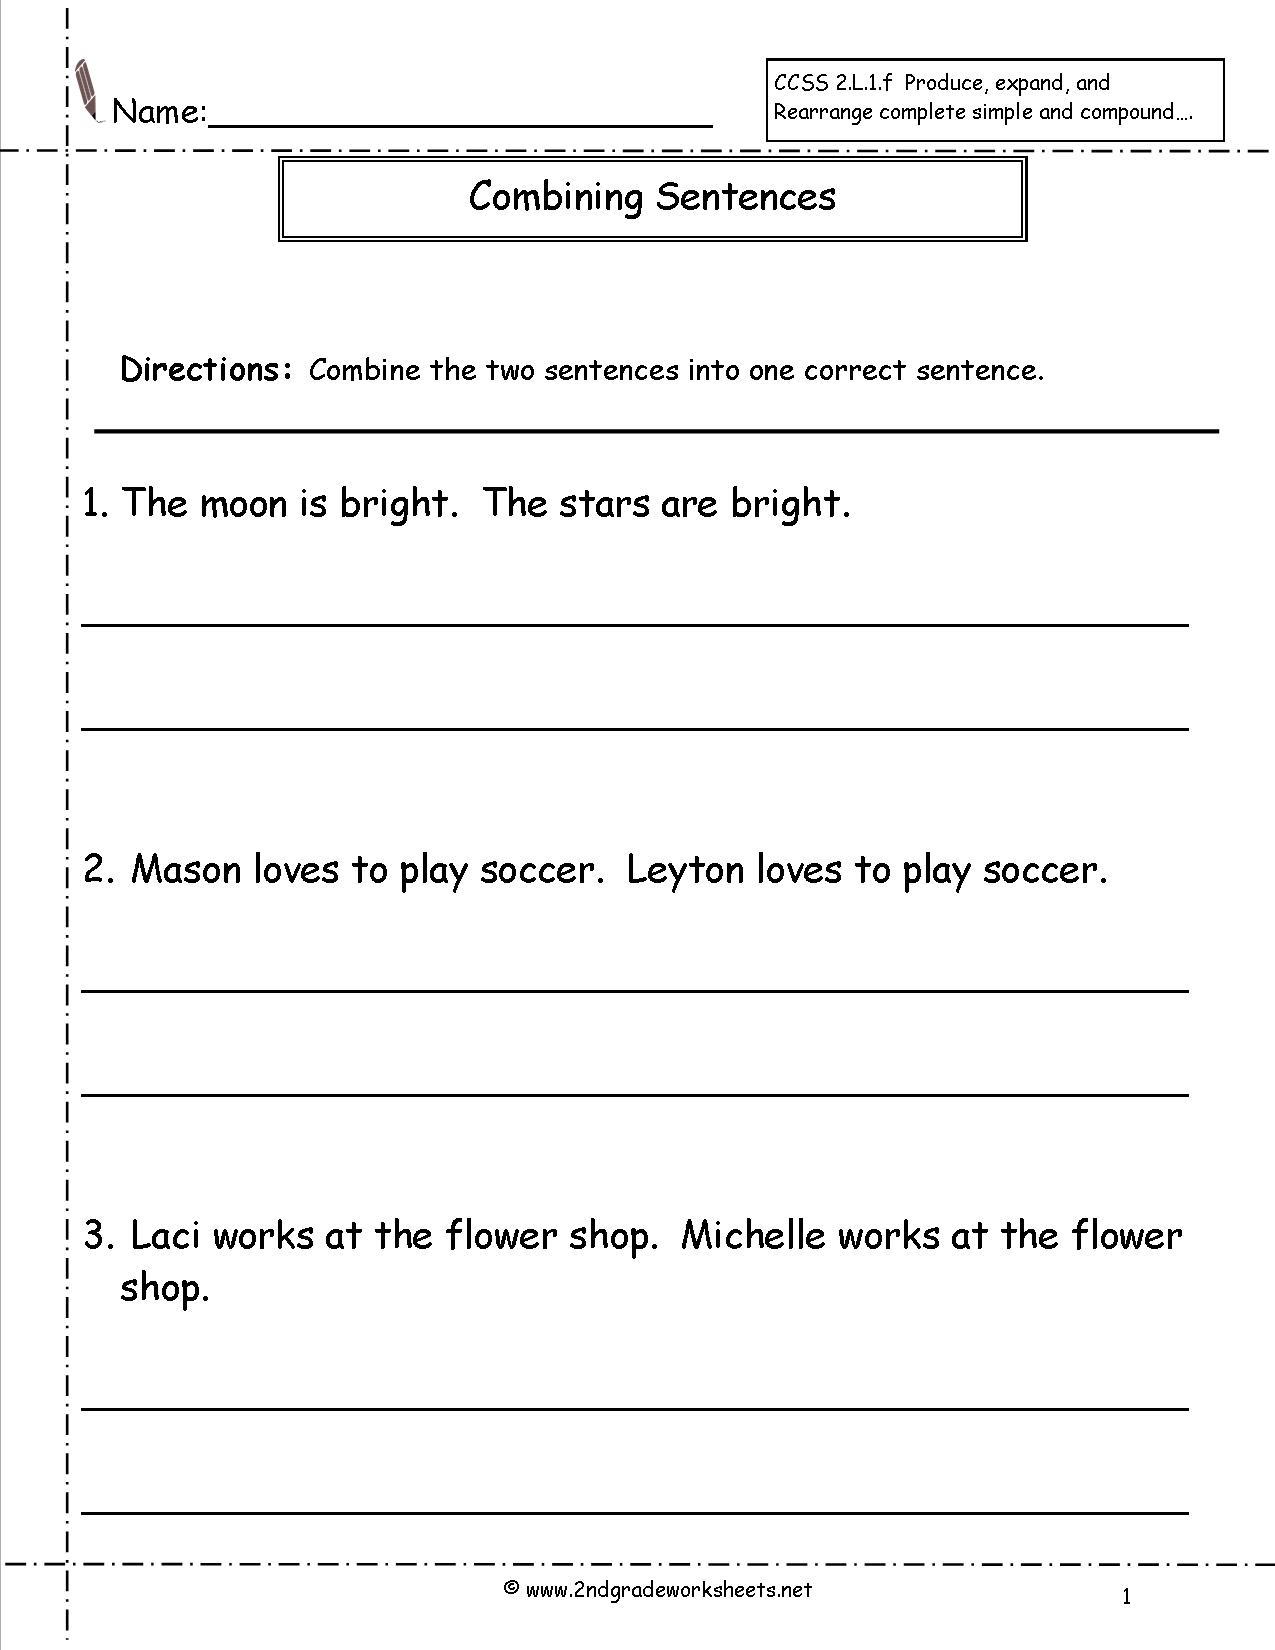 16 Best Images Of Printable Grammar Worksheets For 3rd Grade